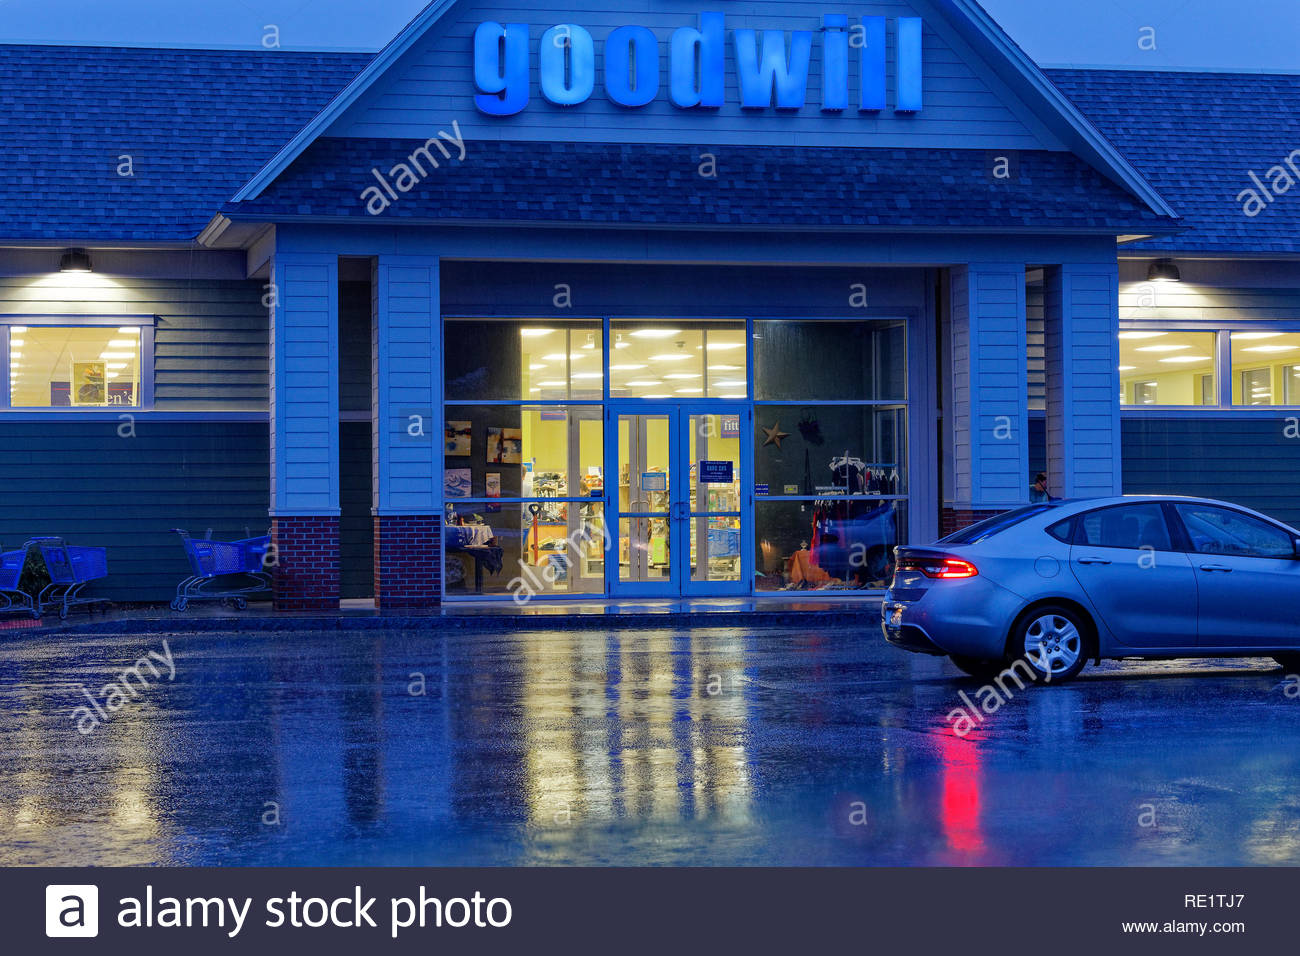 Goodwill store in Rockland, Maine, USA Stockbild